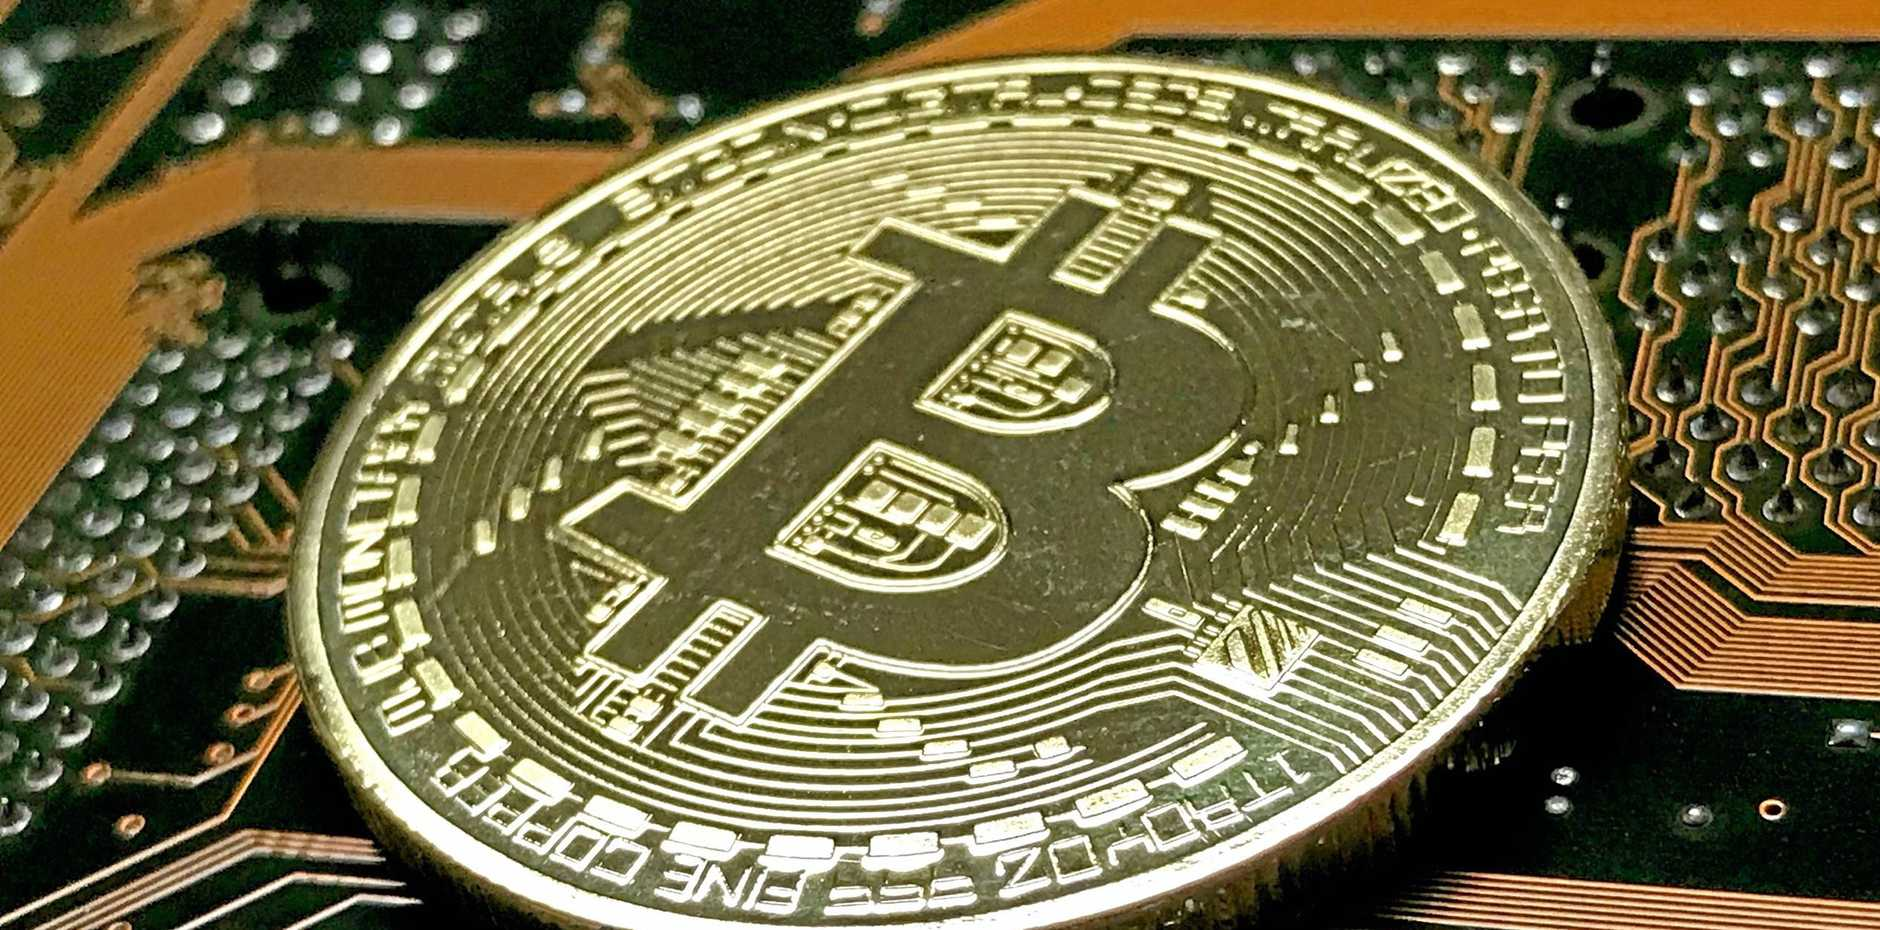 The cryptocurrency, which allows anonymous transactions unrestricted by global borders, is popular with tech heads, people suspicious of government and those seeking to launder money.